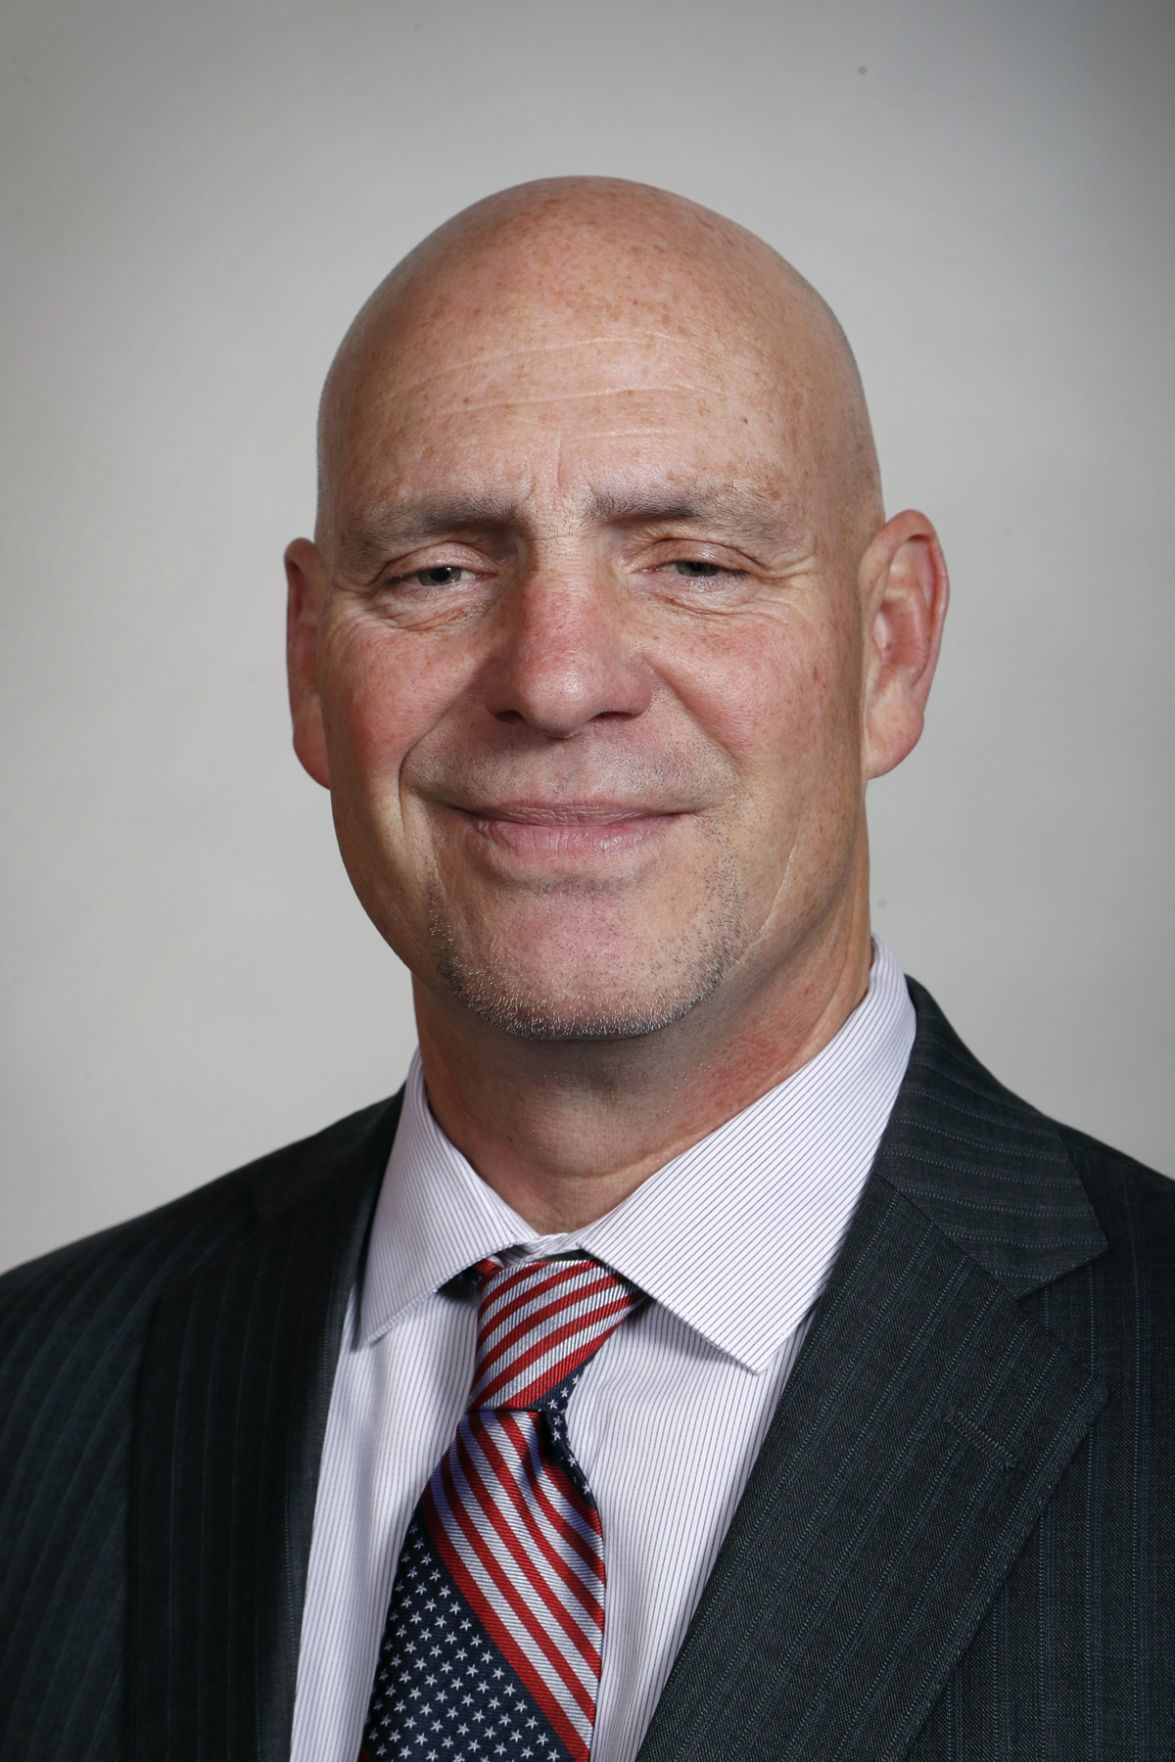 Iowa state Rep. Dave Jacoby